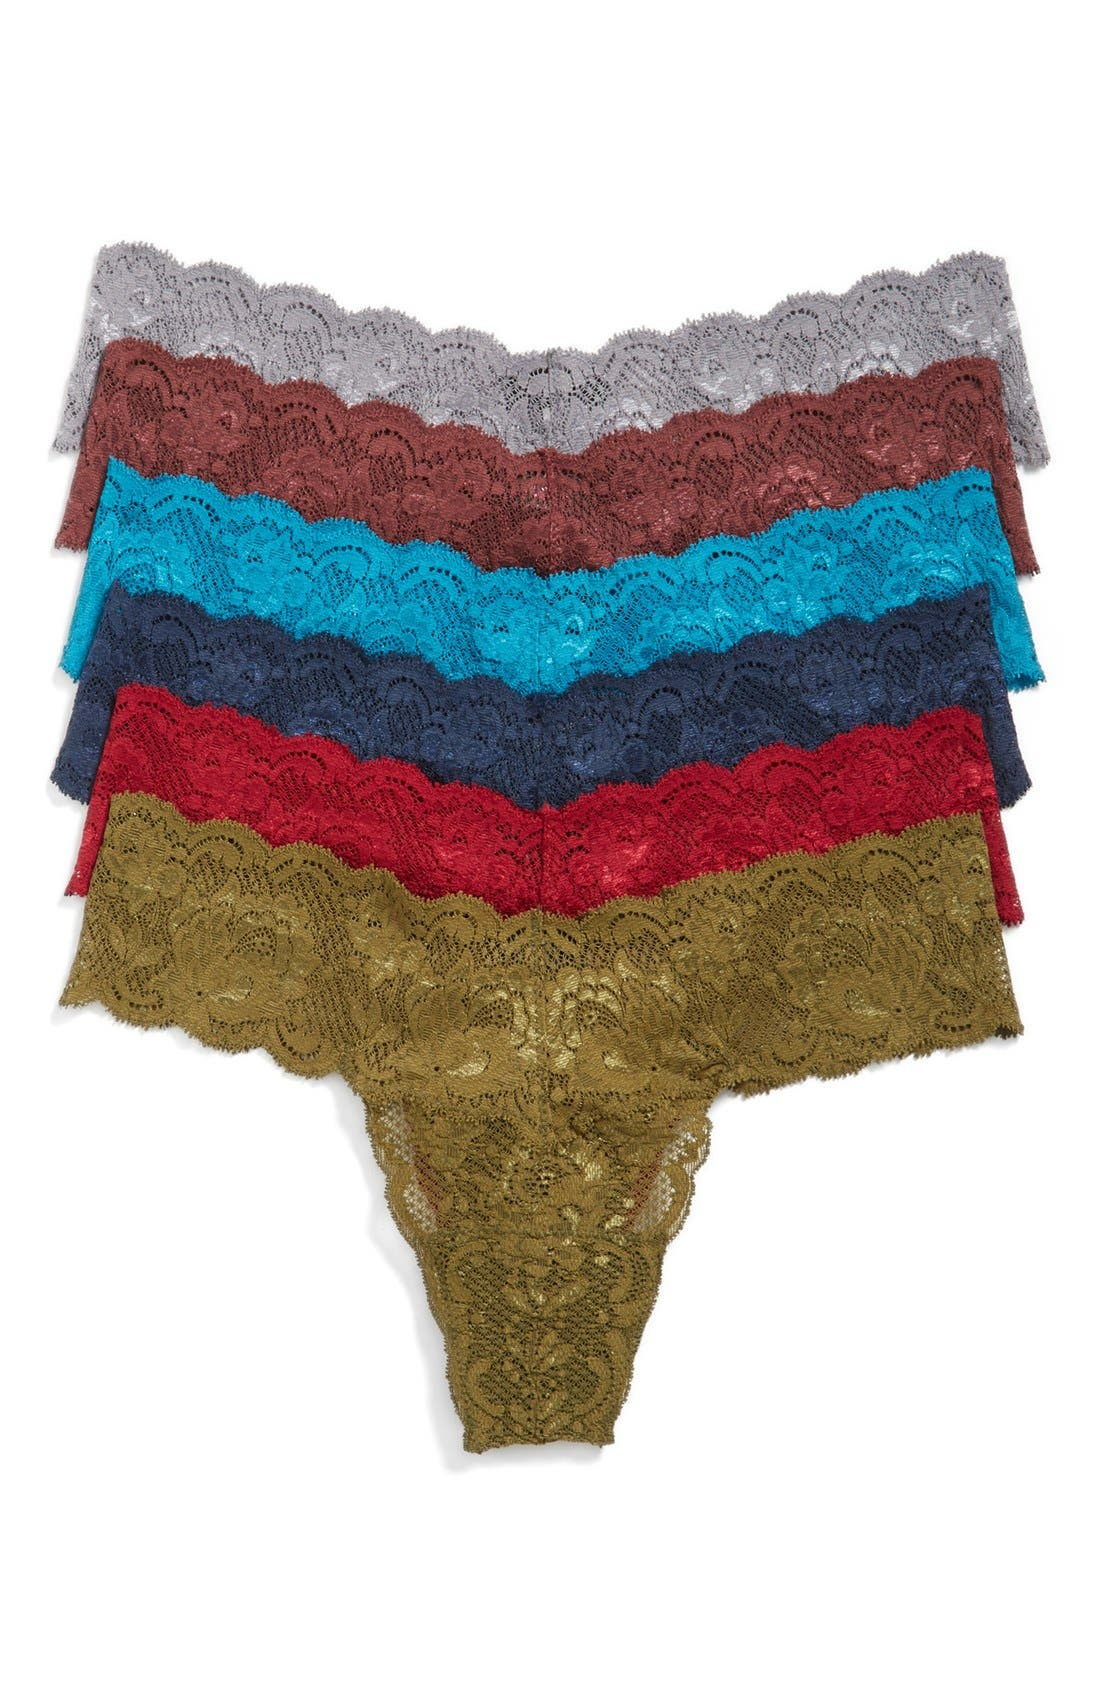 Main Image - Cosabella 'Never Say Never Cutie' Low Rise Lace Thong (6-Pack) (Online Only)